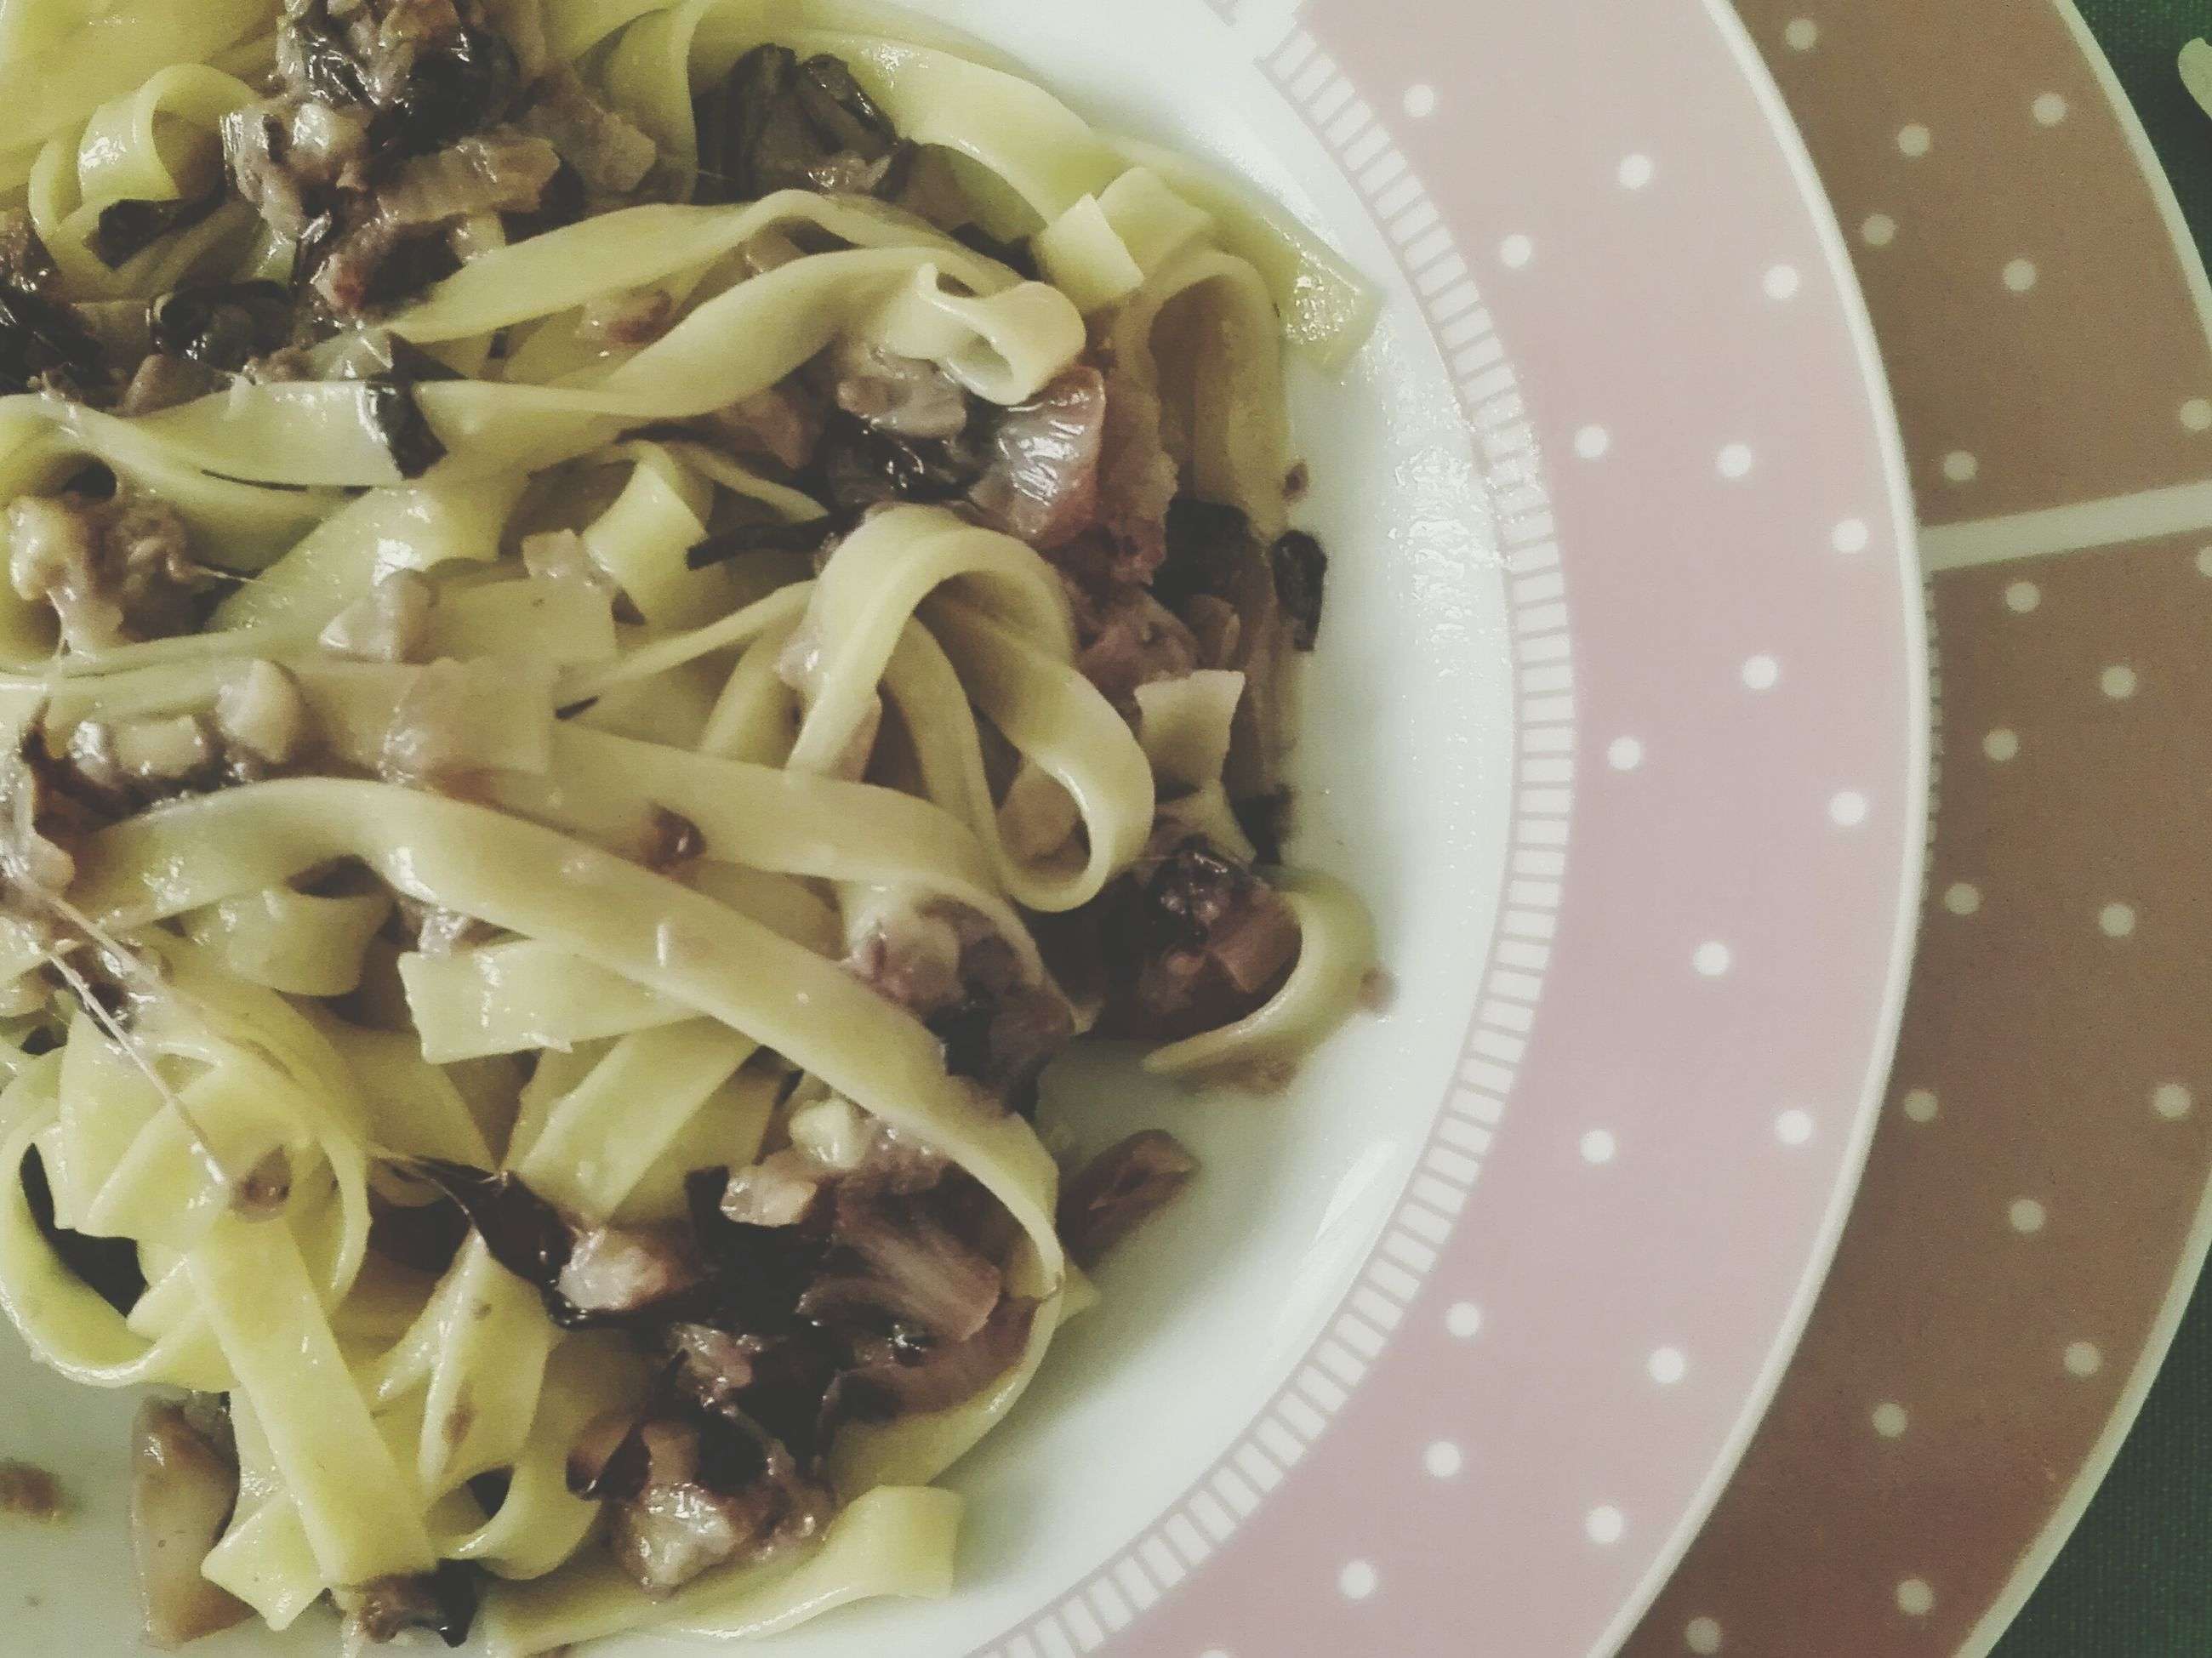 food and drink, food, freshness, indoors, ready-to-eat, healthy eating, plate, close-up, serving size, still life, meal, high angle view, bowl, indulgence, vegetable, pasta, table, noodles, meat, served